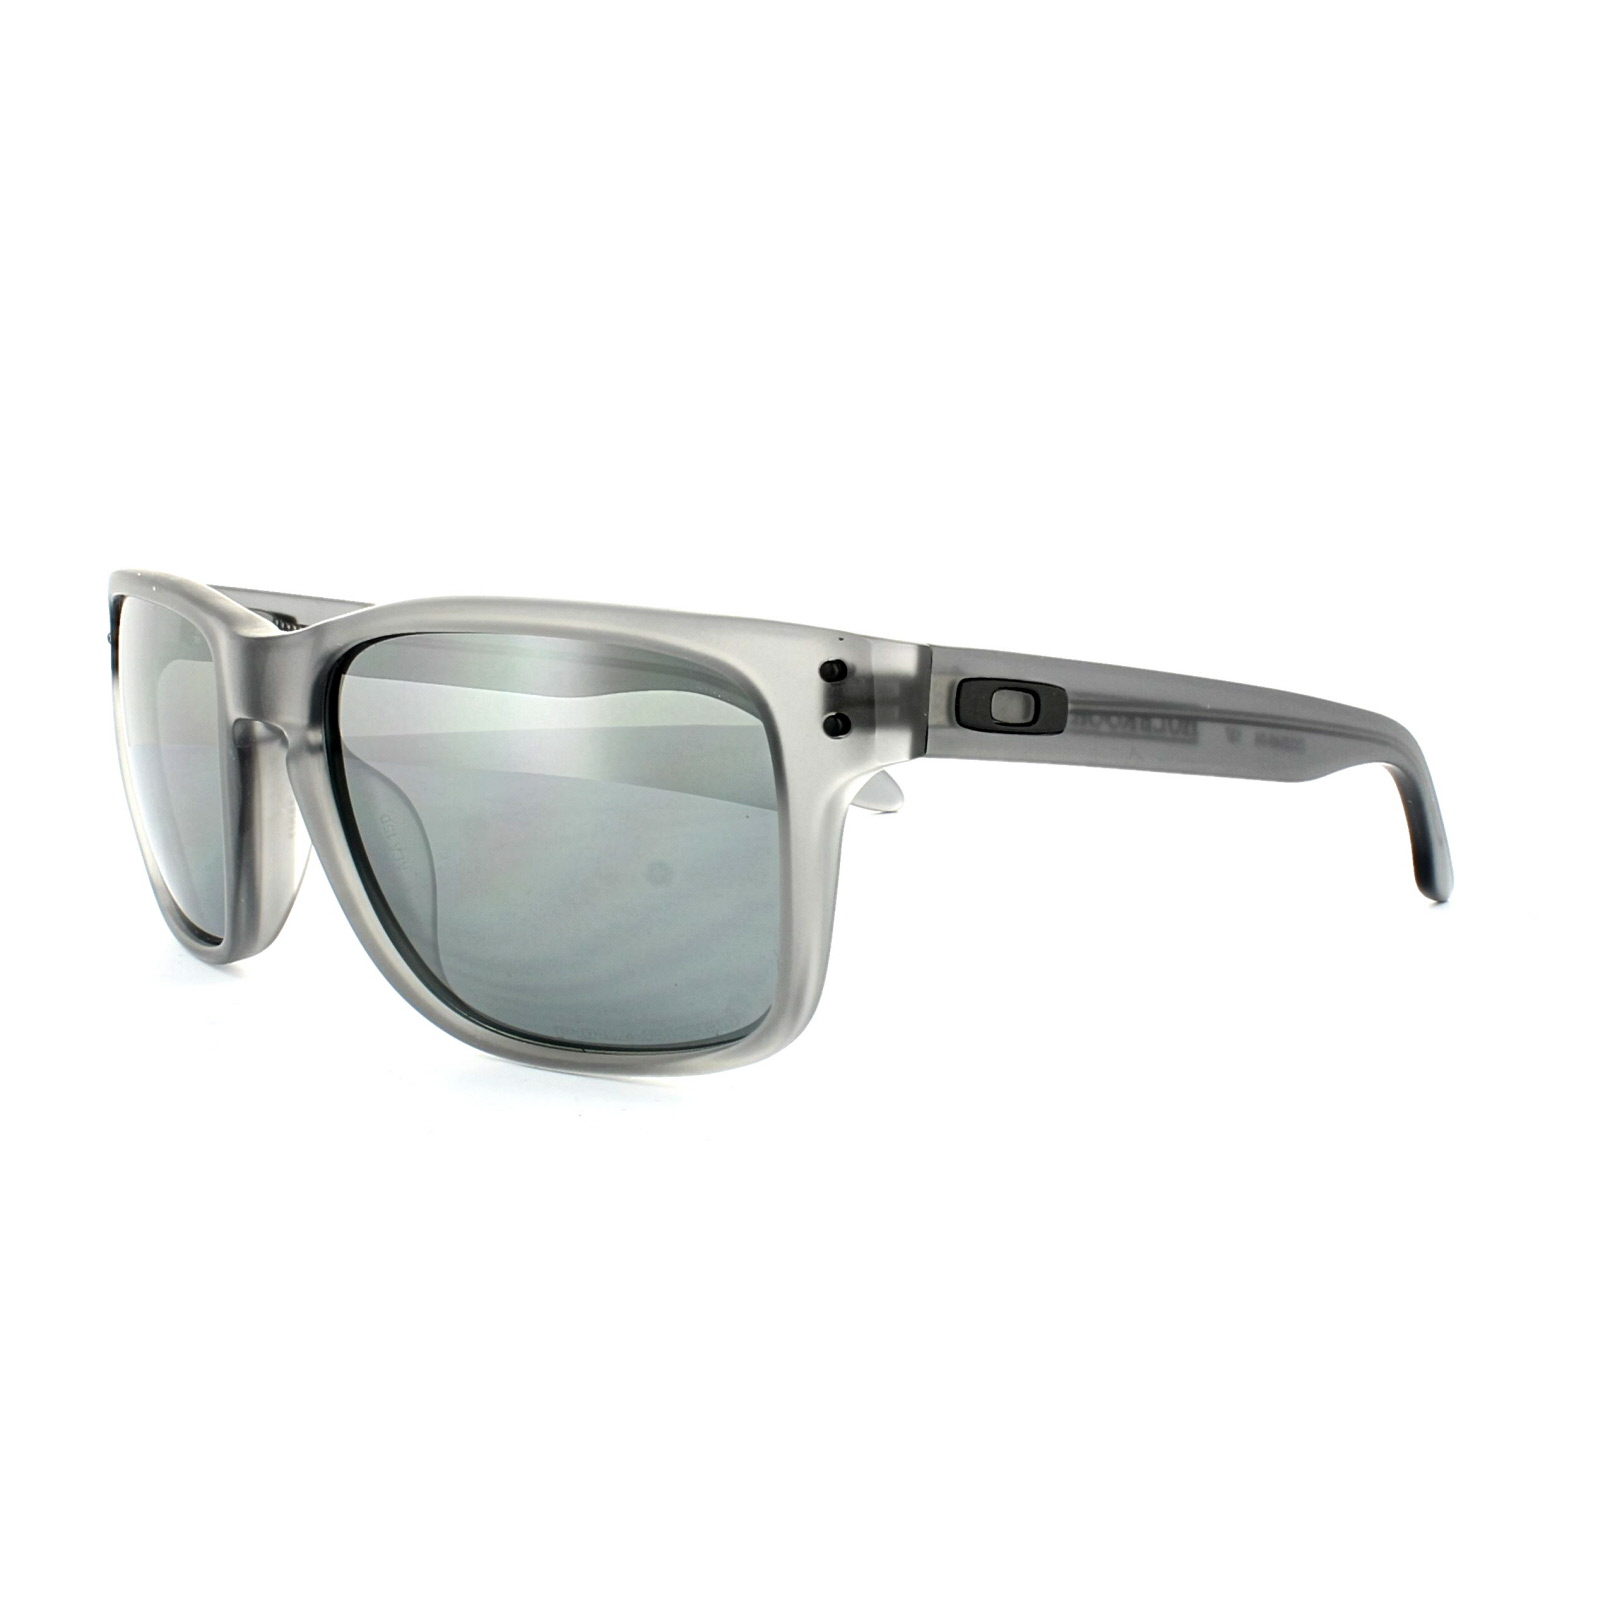 60b7a1c58 Oakley Holbrook Smoke Grey Black Iridium Review | City of Kenmore ...